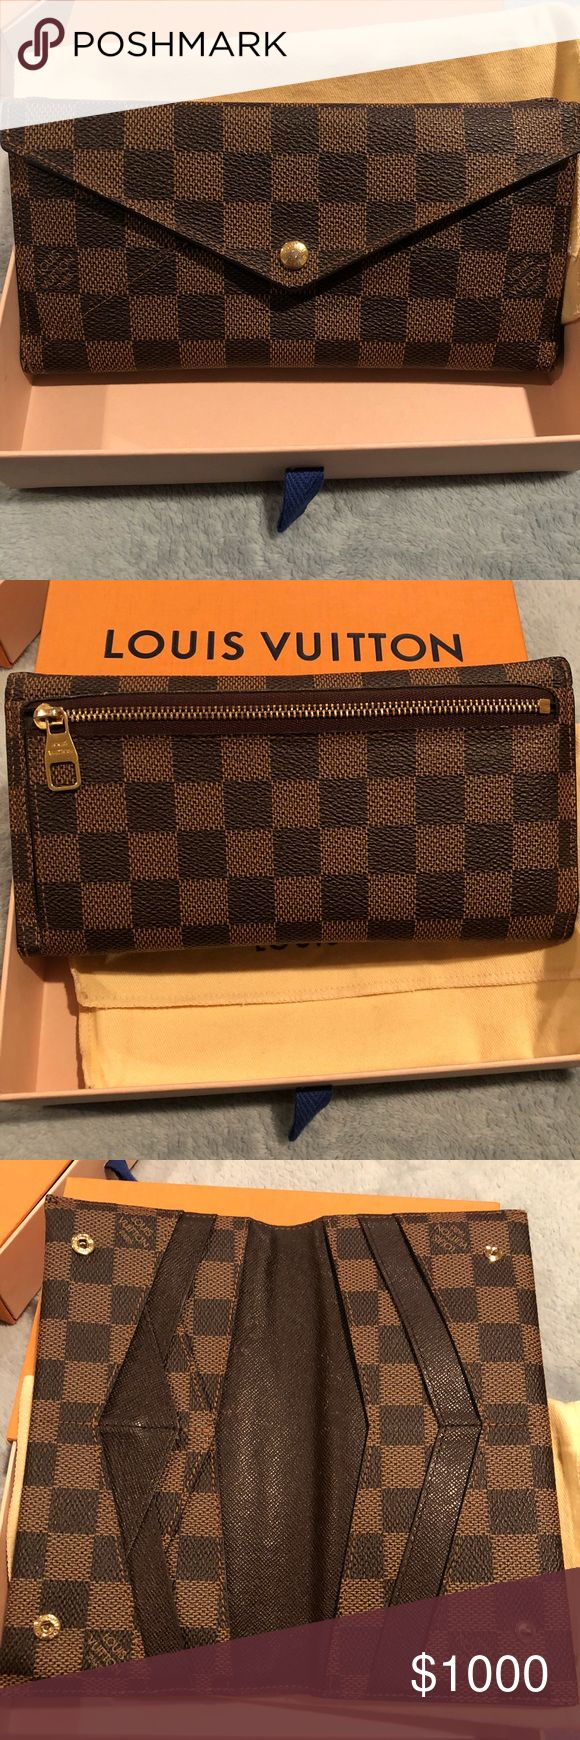 """♦️Louis Vuitton Damier Ebene Origami Wallet♦️ ♦️Authentic Louis Vuitton Damier Ebene Origami Wallet♦️  Beautiful Pre-Loved no longer made Origami Wallet  Comes with, wallet, dust bag, box  ❌Final Sale❌   Rude Comments will be BLOCKED♀️  Includes fourteen card holders, five pockets, and one exterior zip pocket. Original Louis Vuitton Box and dust bag is included.  Dimensions: 7.75""""W x 1""""D x 4""""H Louis Vuitton Bags Wallets"""